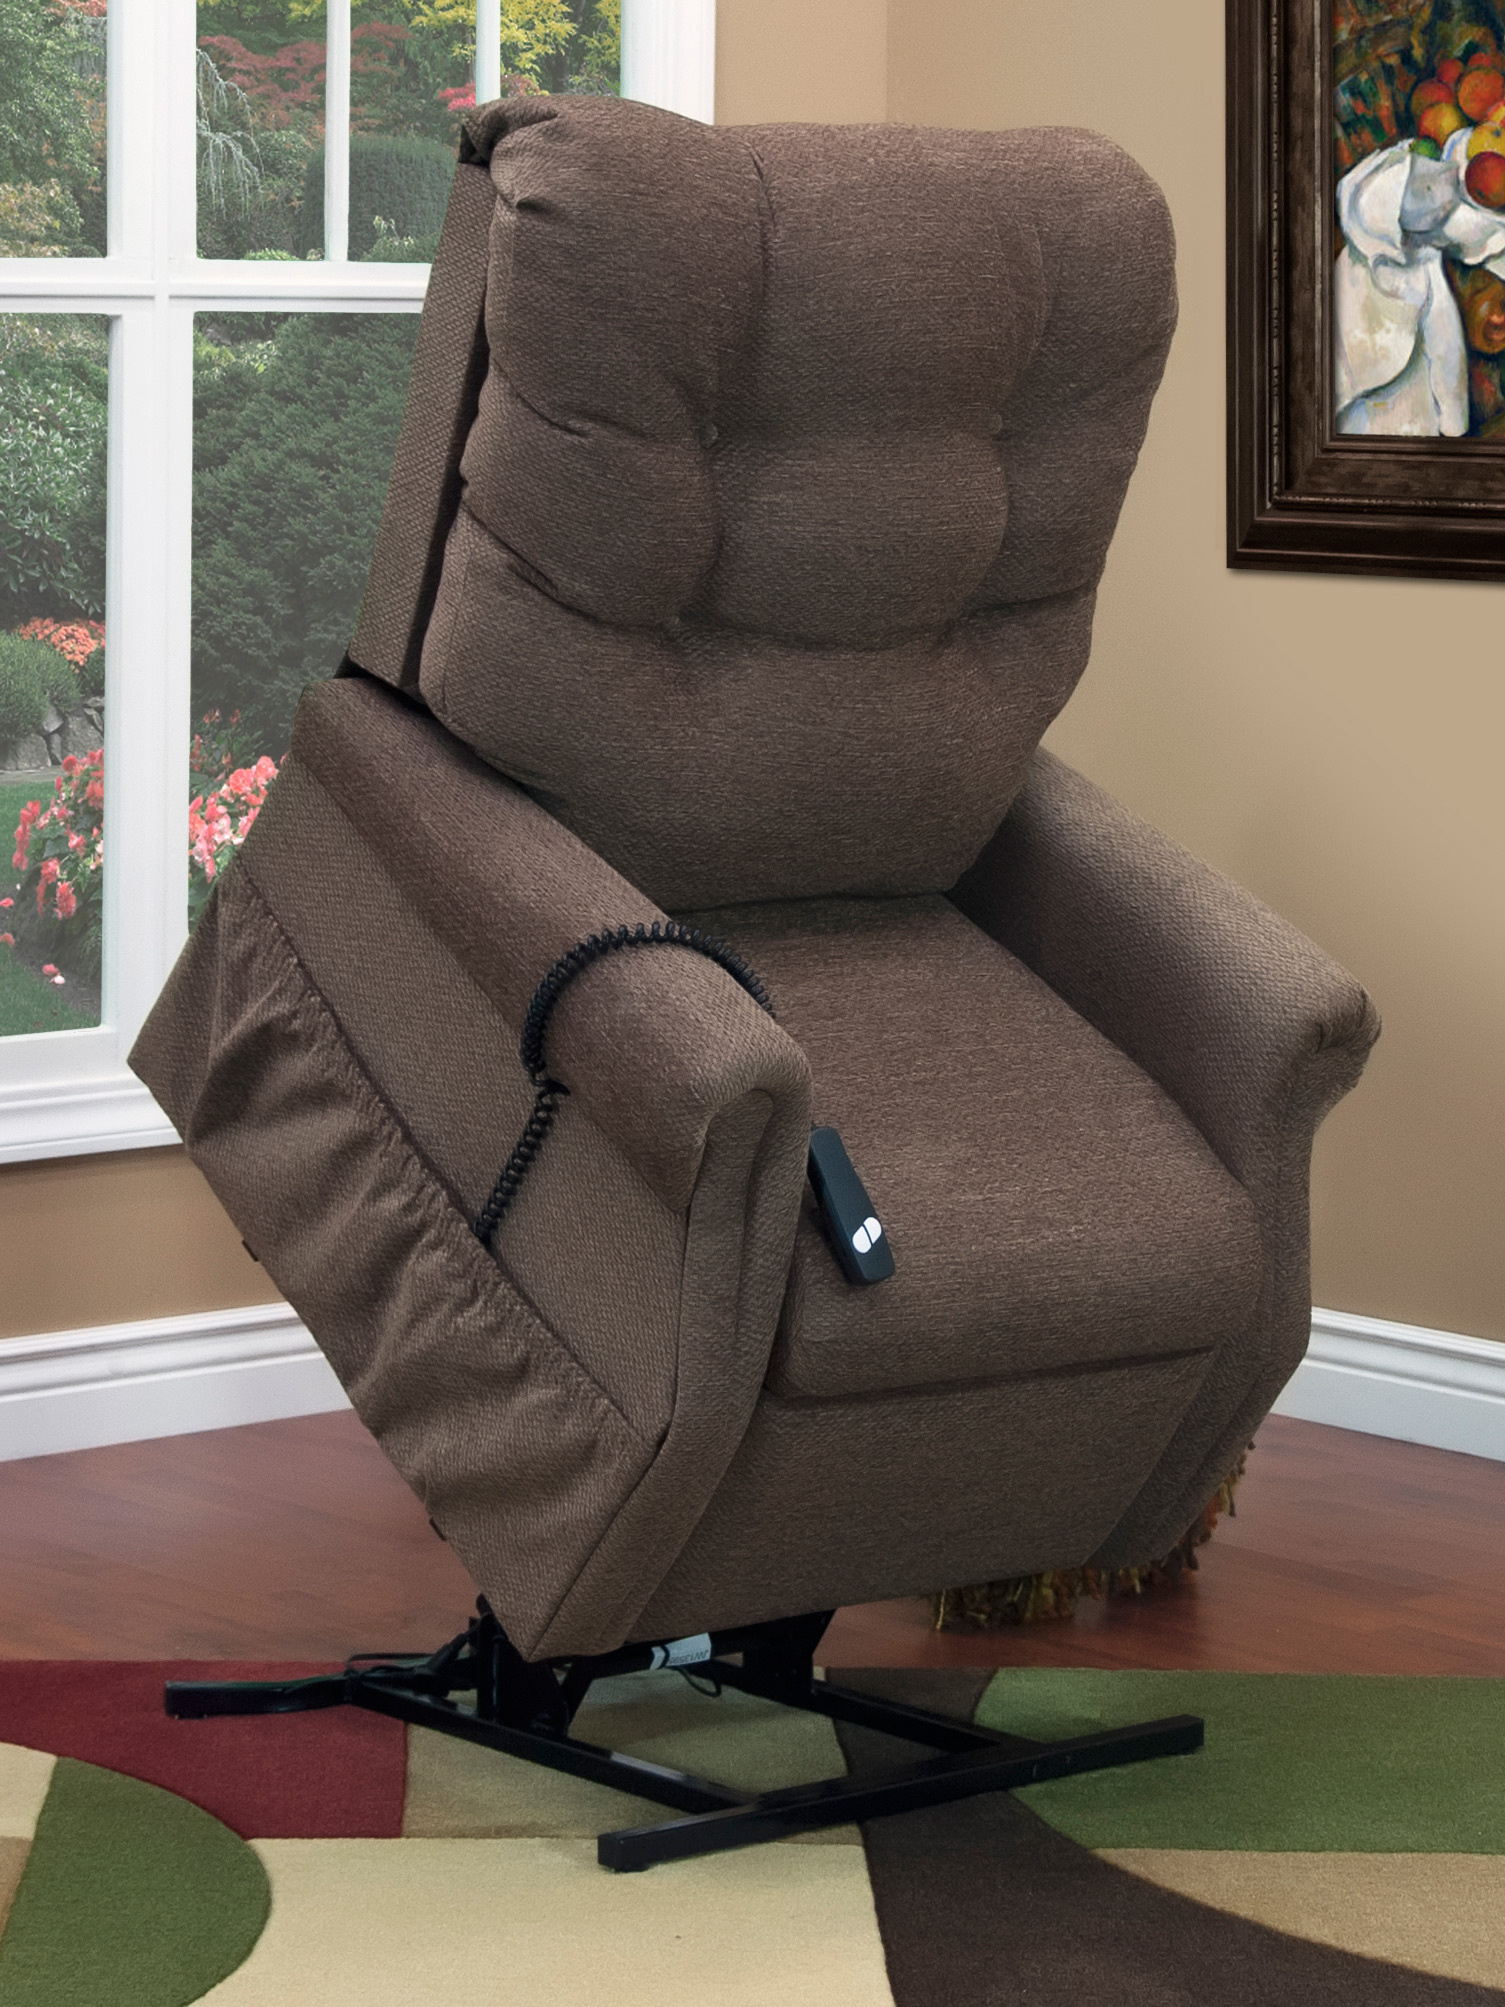 Med Lift Lift Chairs Lift Chair